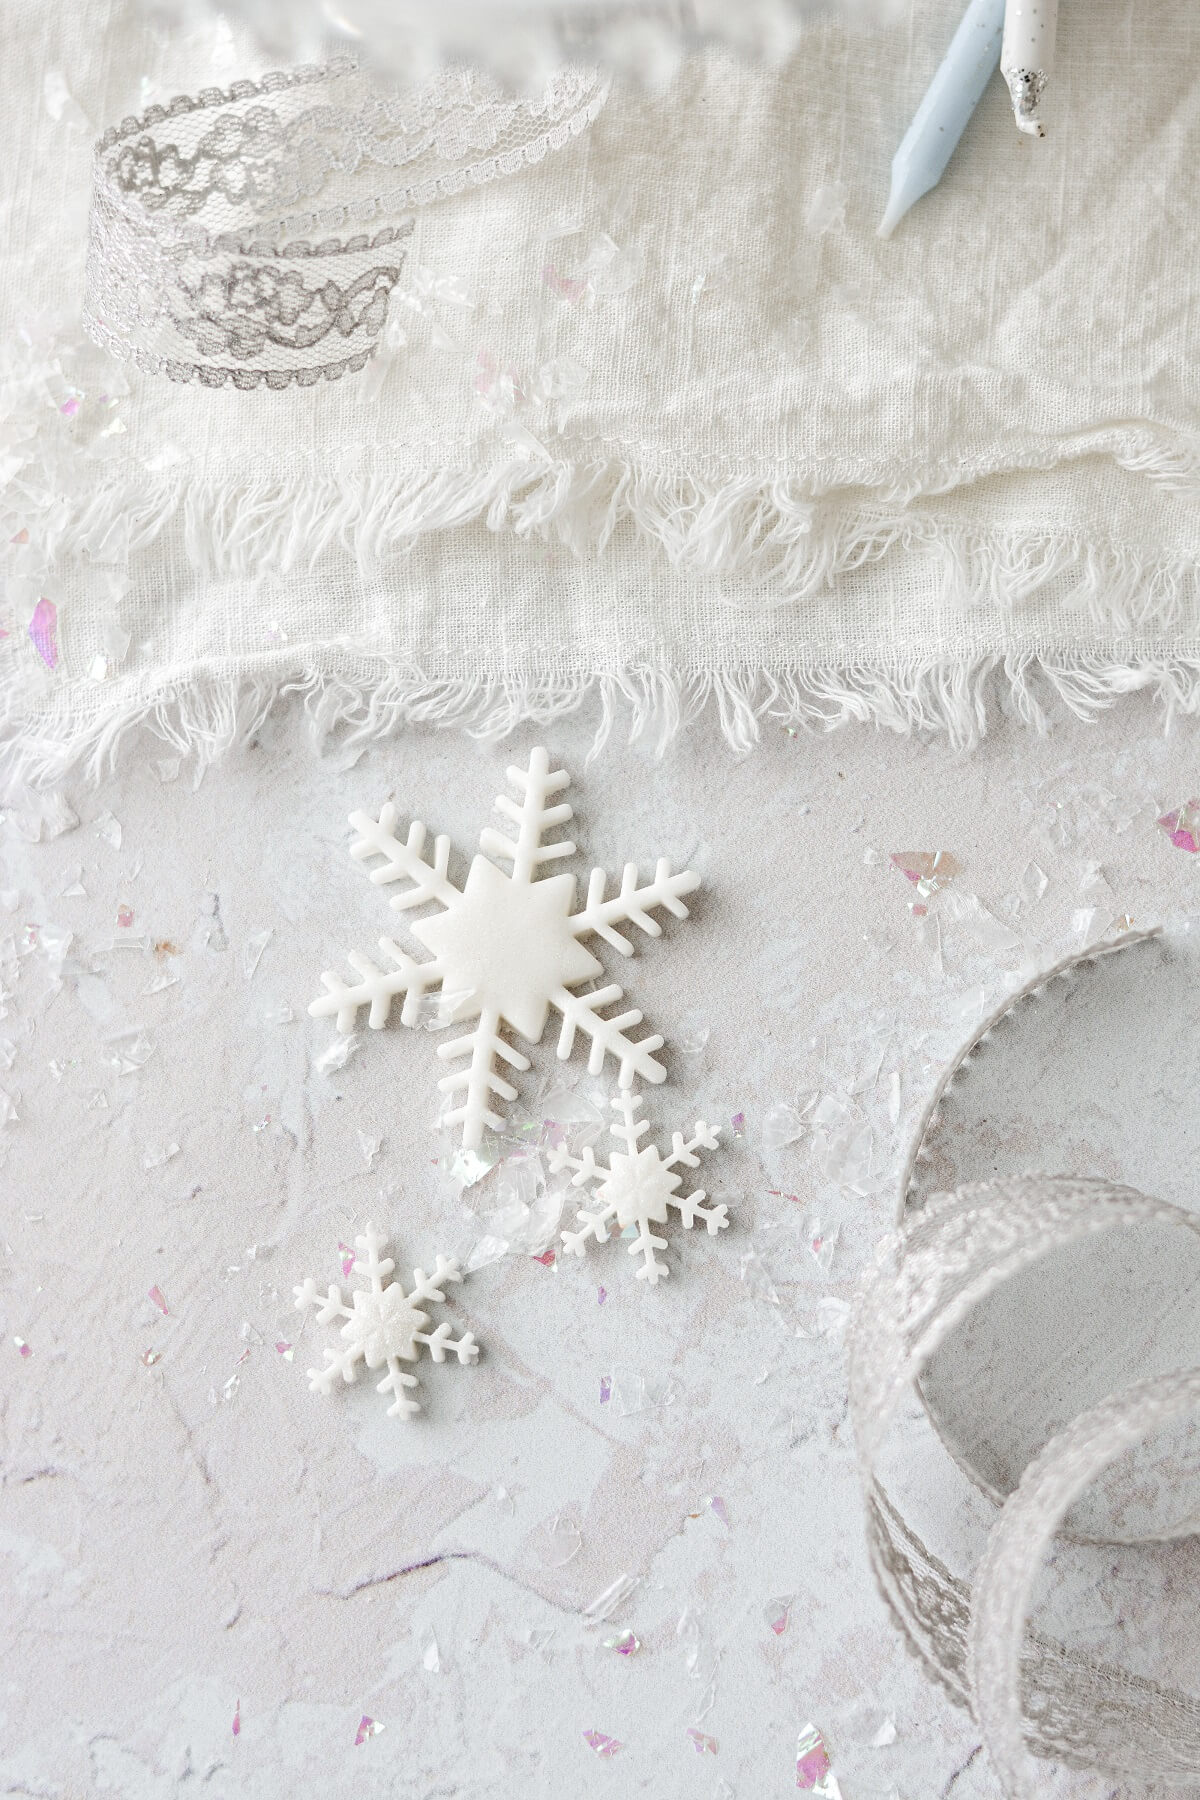 Fondant snowflakes for decorating a cake.